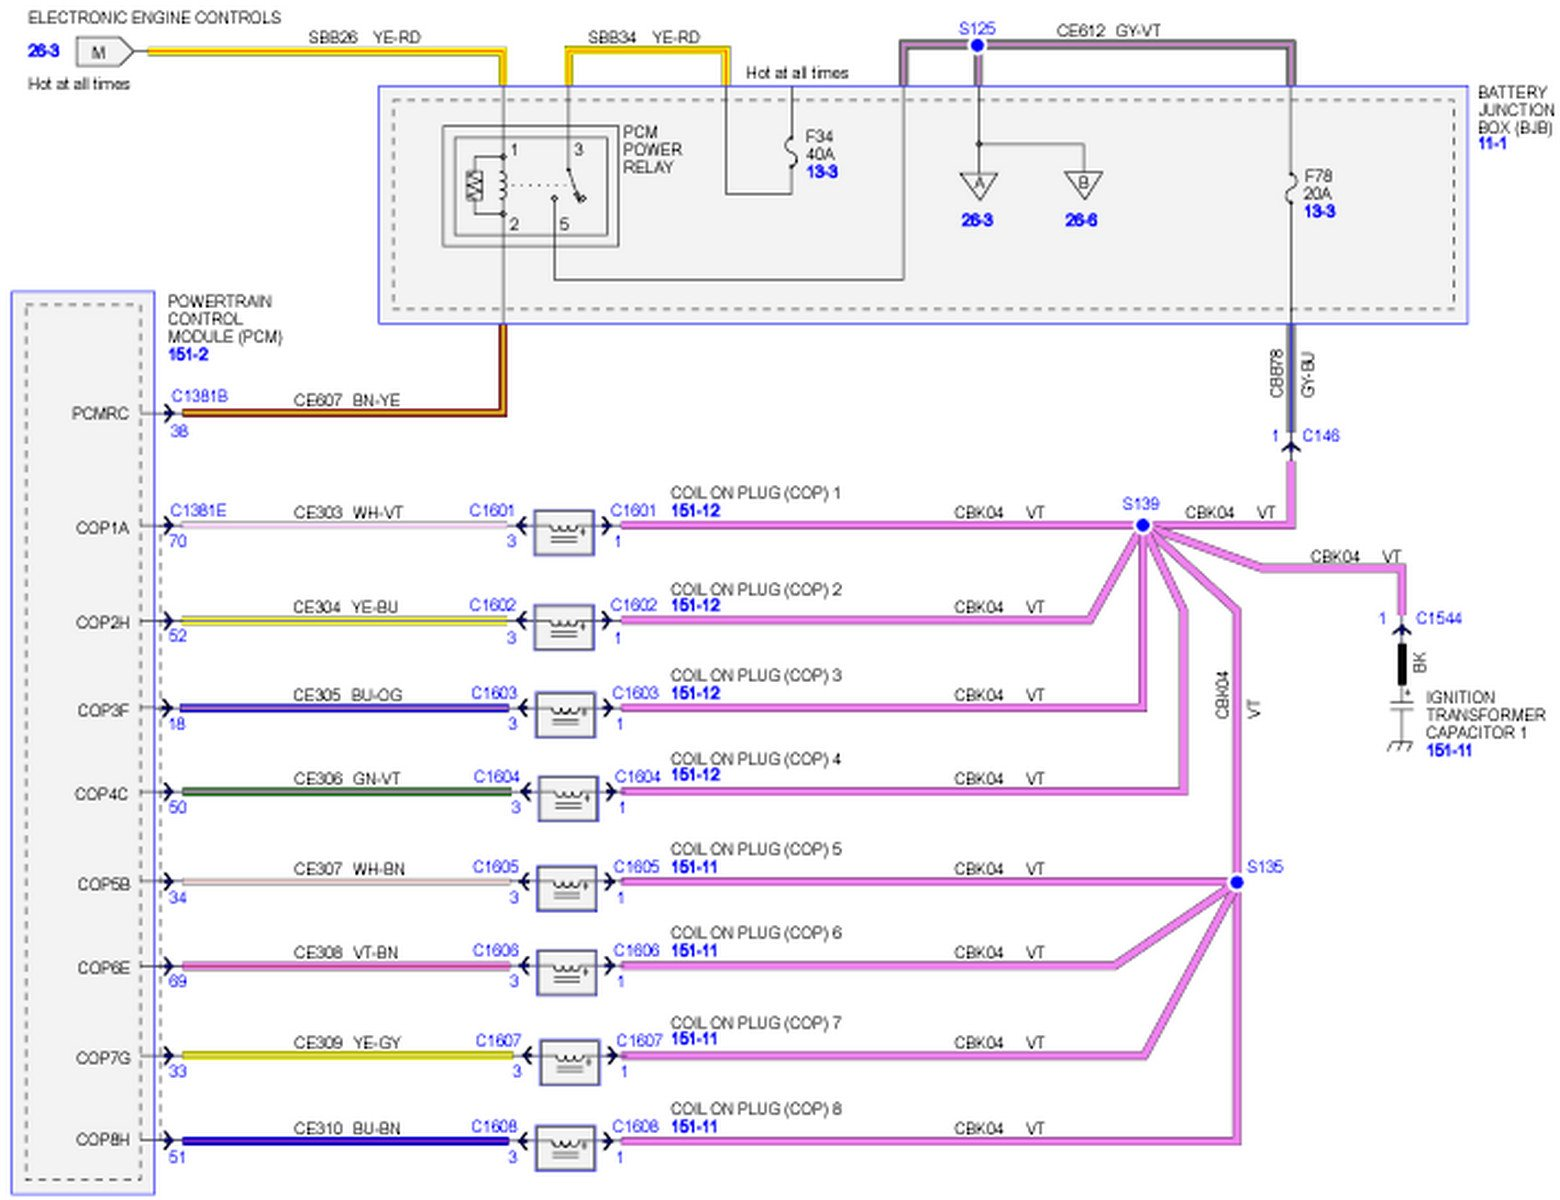 2011 ford f 150 wiring diagrams 1984 ford f 150 wiring diagrams i need a pcm wiring schematic for a 2011 f150 with 6.2 ... #11